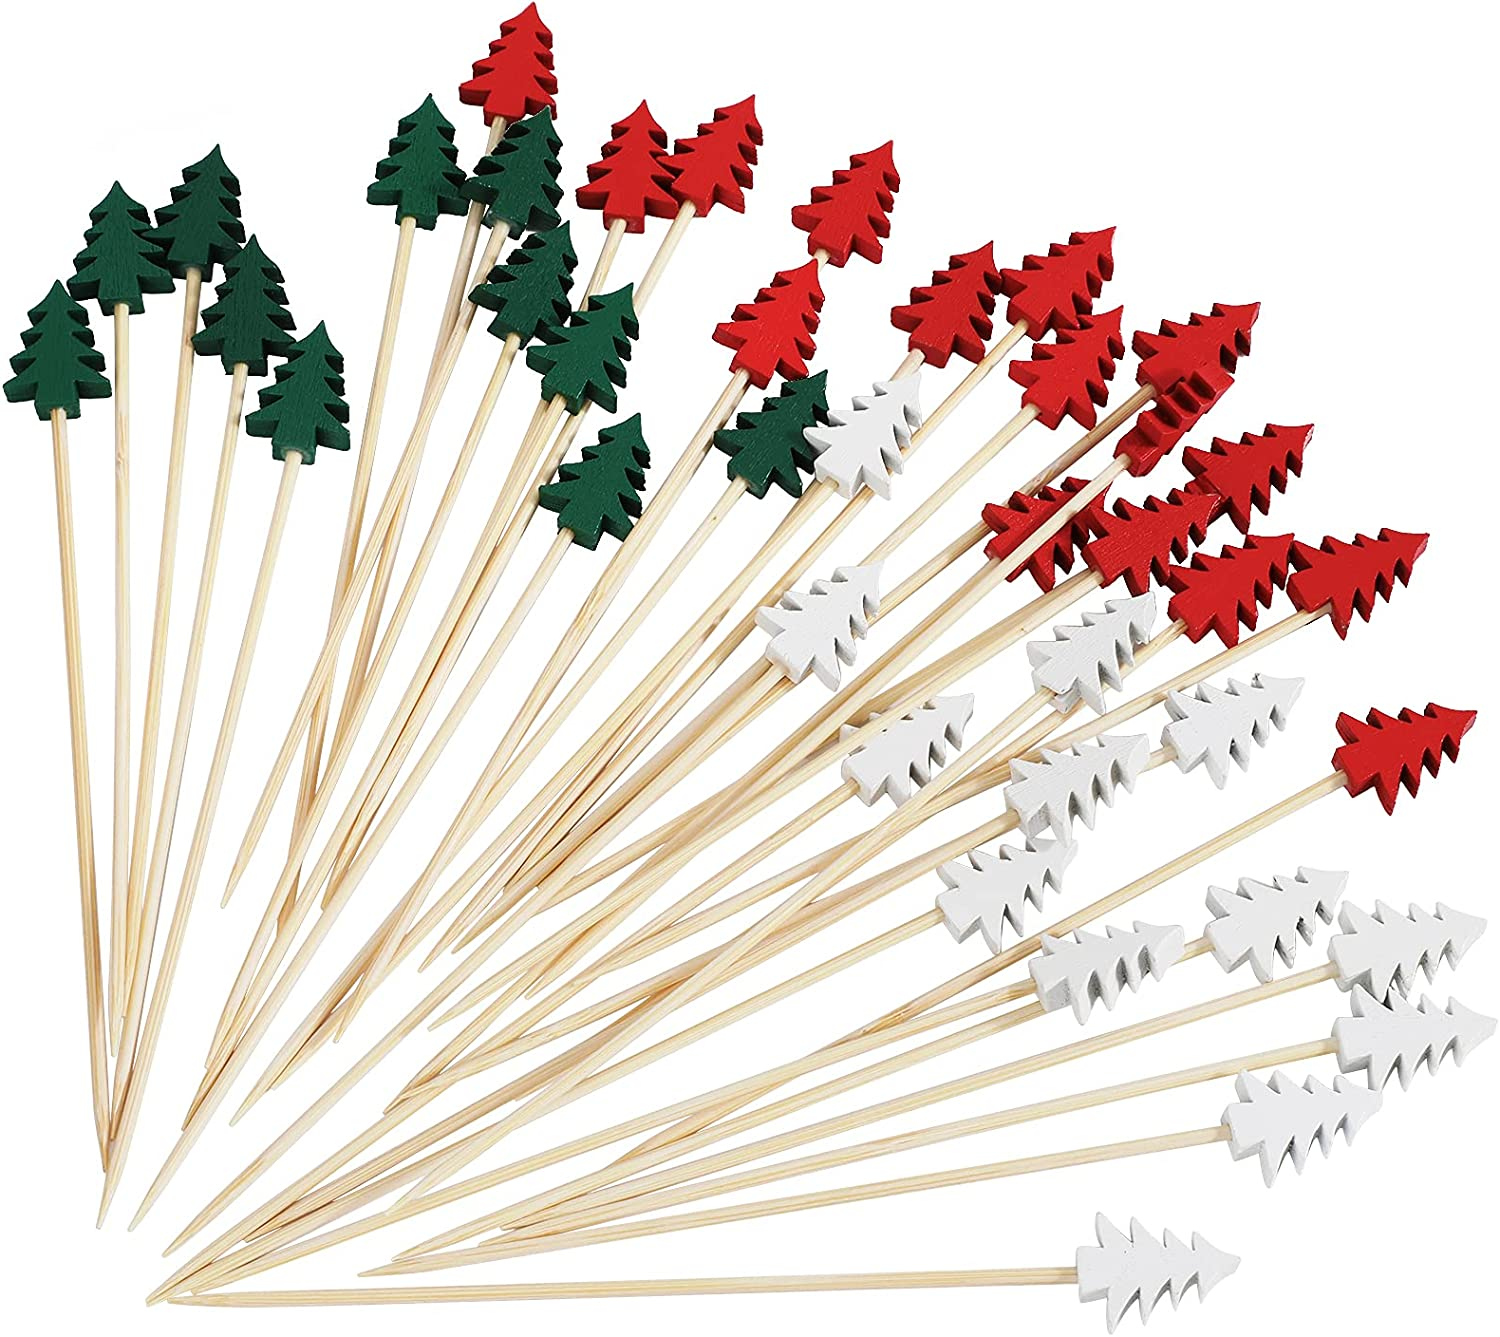 OOTSR Pack of 100 Wooden Christmas Tree Shape Cocktail Picks, Cocktail Picks 5.2 Inch Sandwich Fruit Sticks Pearl Bamboo Toothpicks for Party Appetizer Supplies Decorative